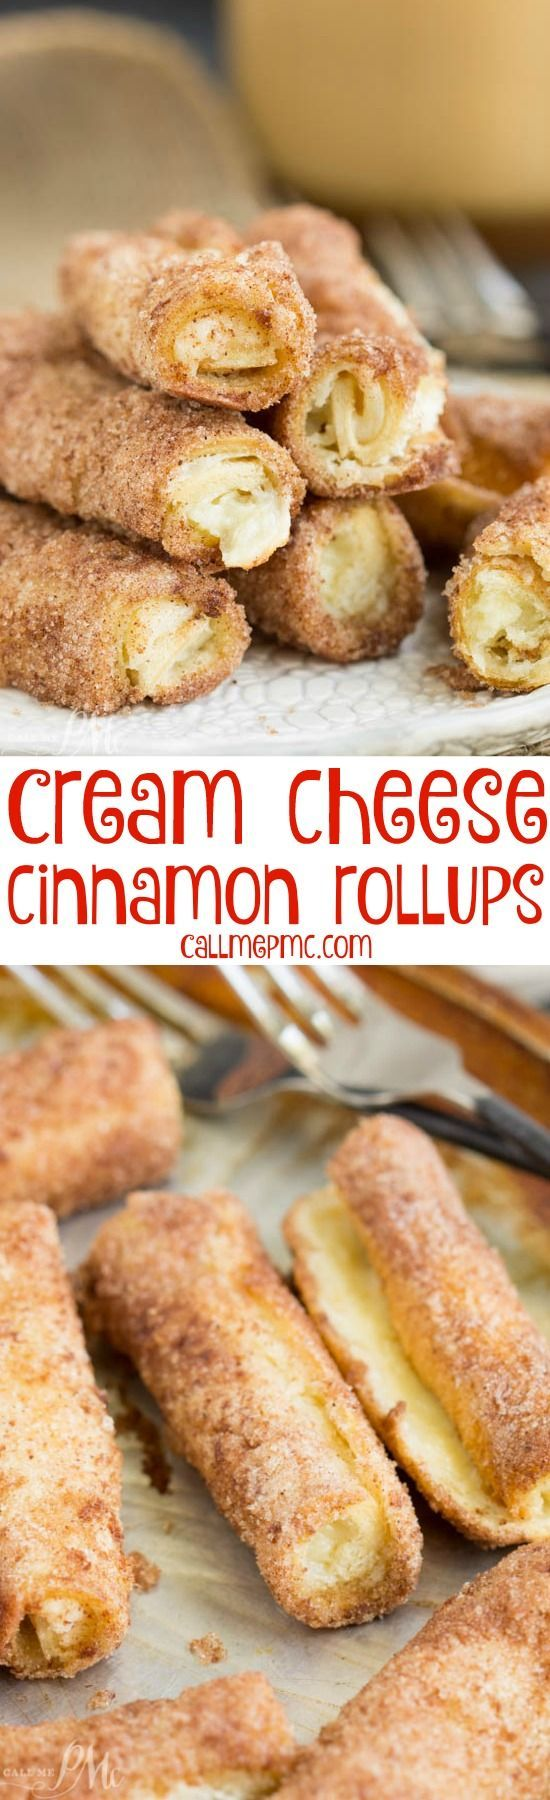 Cheese Blitz is a tasty make-ahead breakfast or brunch recipe. They tastes much like cinnamon rolls without the wait time of having the yeast dough rise. Cream Cheese Cinnamon Rollups is a sweet creamy filling rolled between layers of crust with a light dusting of a cinnamon-sugar coating.